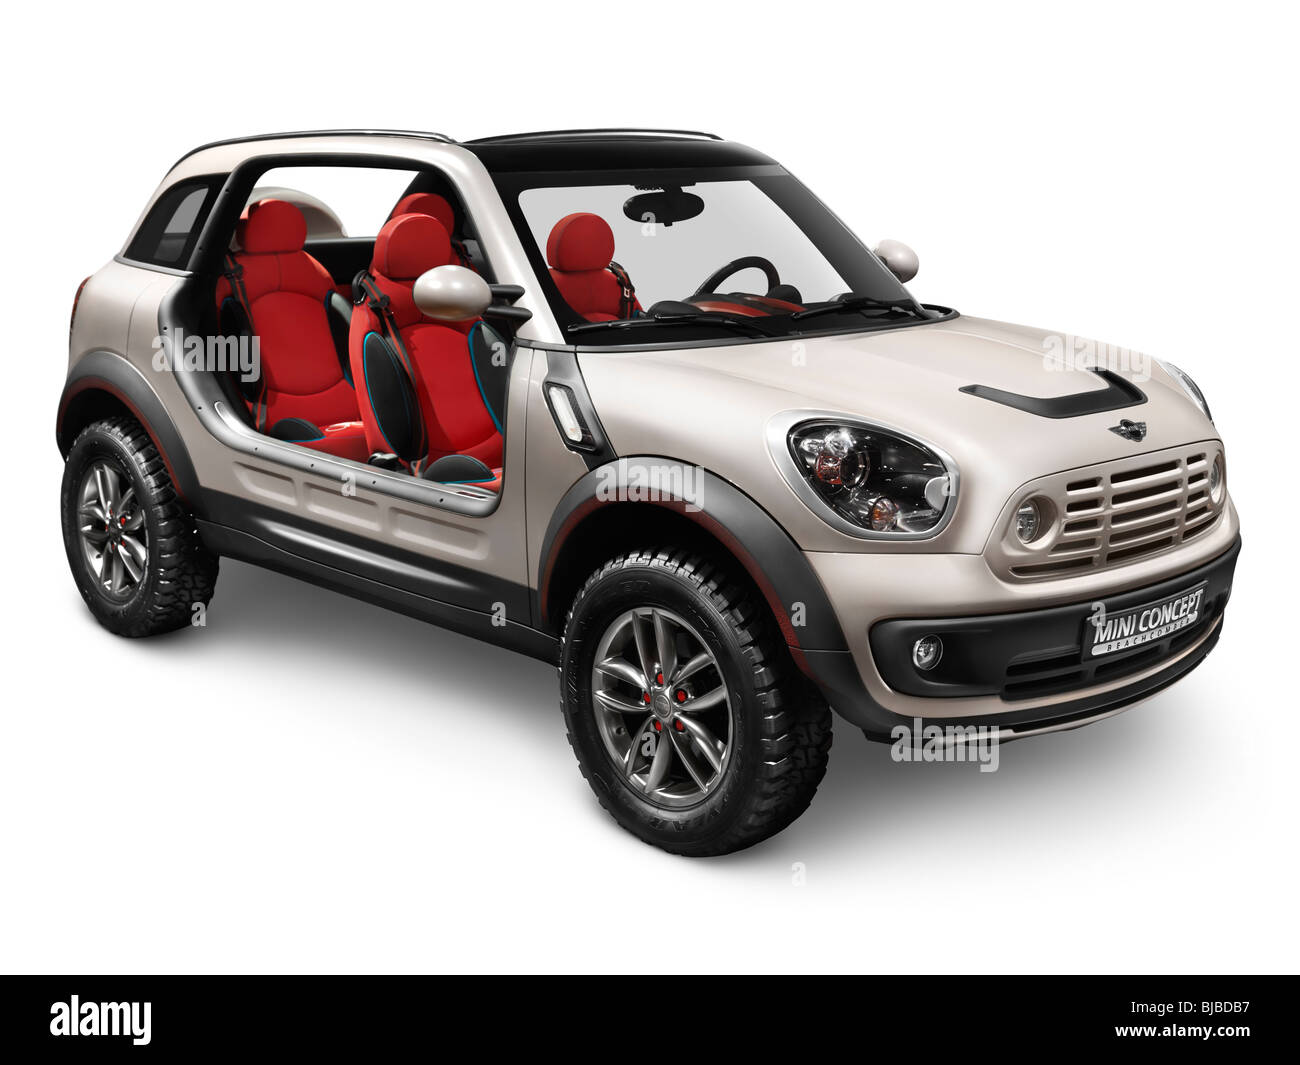 2010 Mini Beachcomber Concept car without doors and roof isolated on white background with clipping path - Stock Image